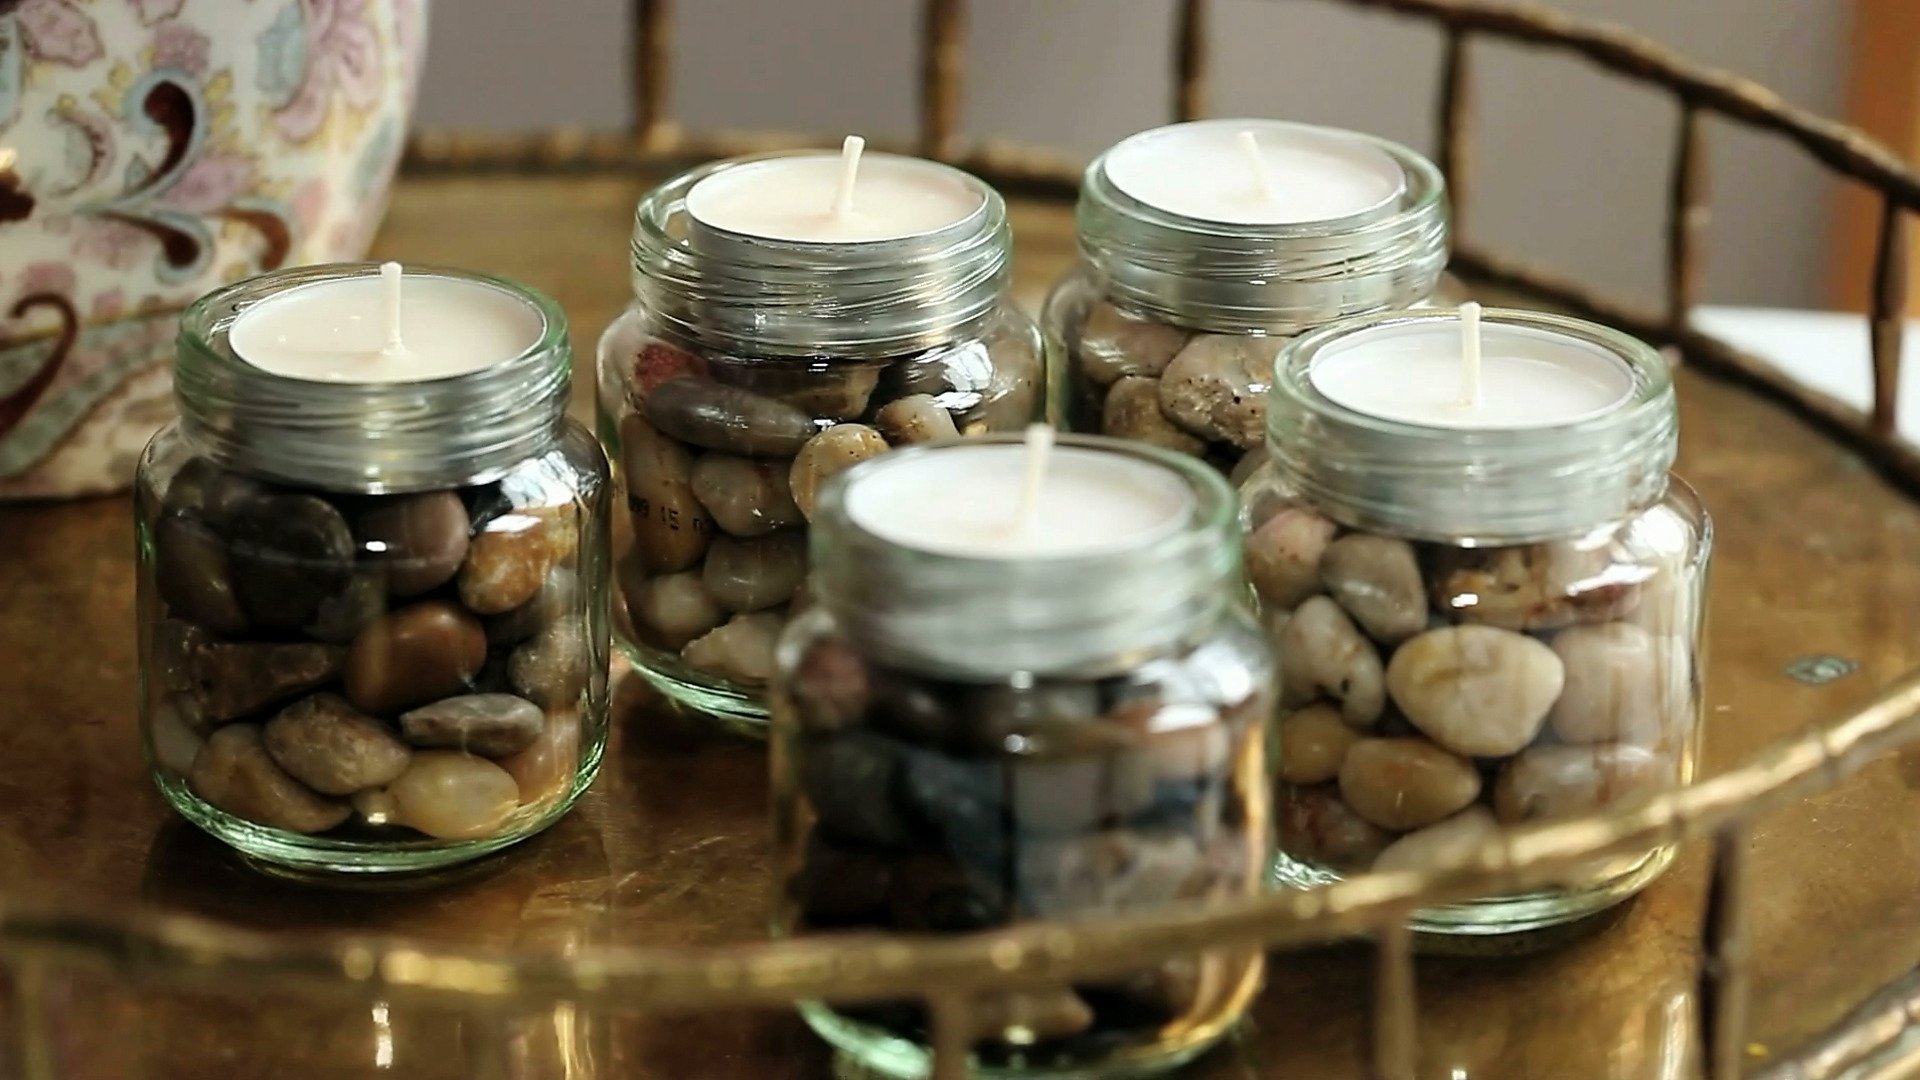 upcycled baby food jar ideas video | hgtv